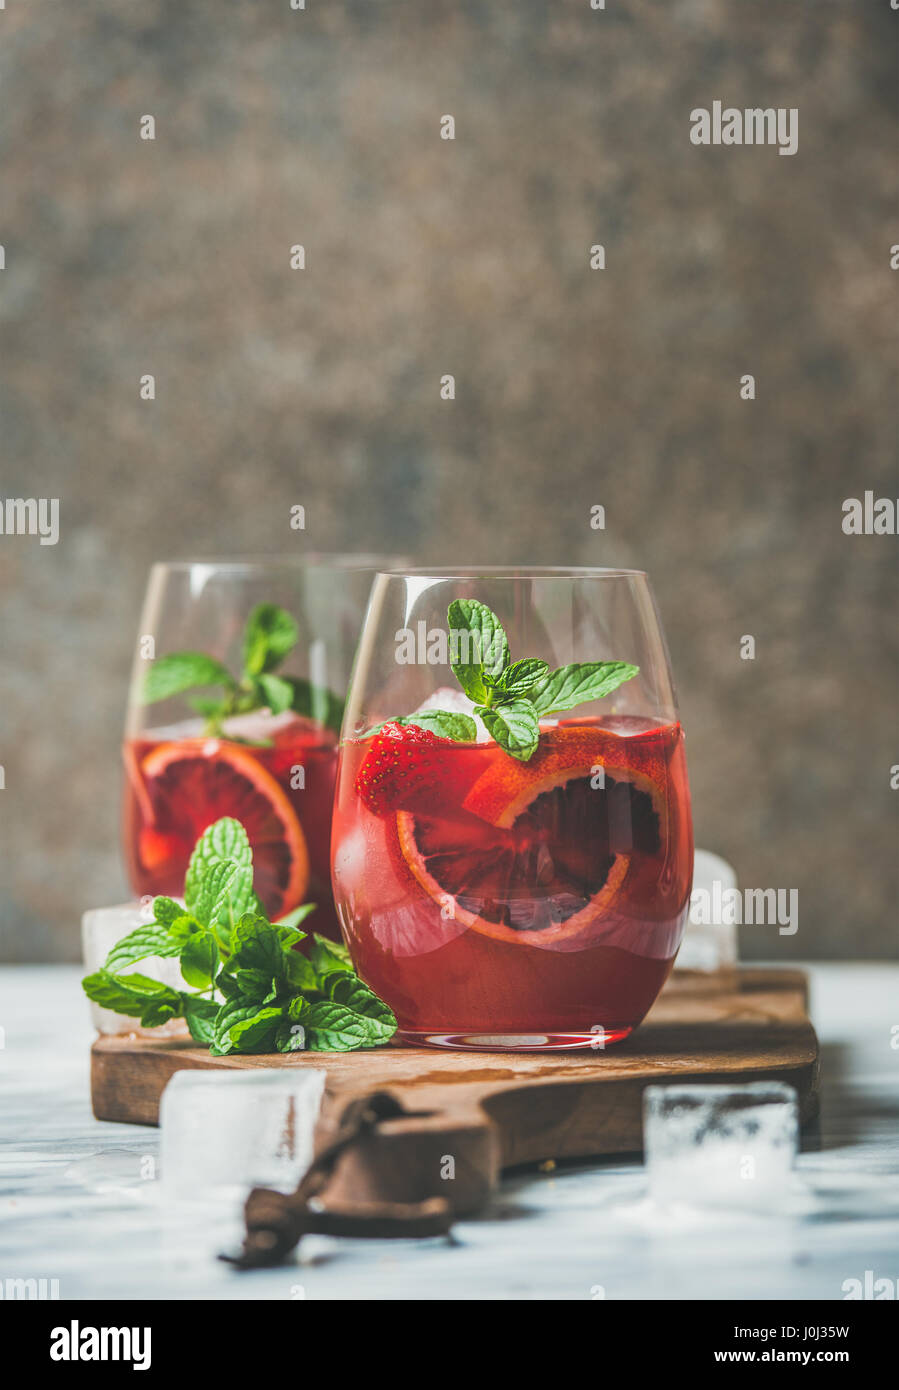 Orange sanguine et Sangria estivale de fraises dans les verres, copy space Photo Stock